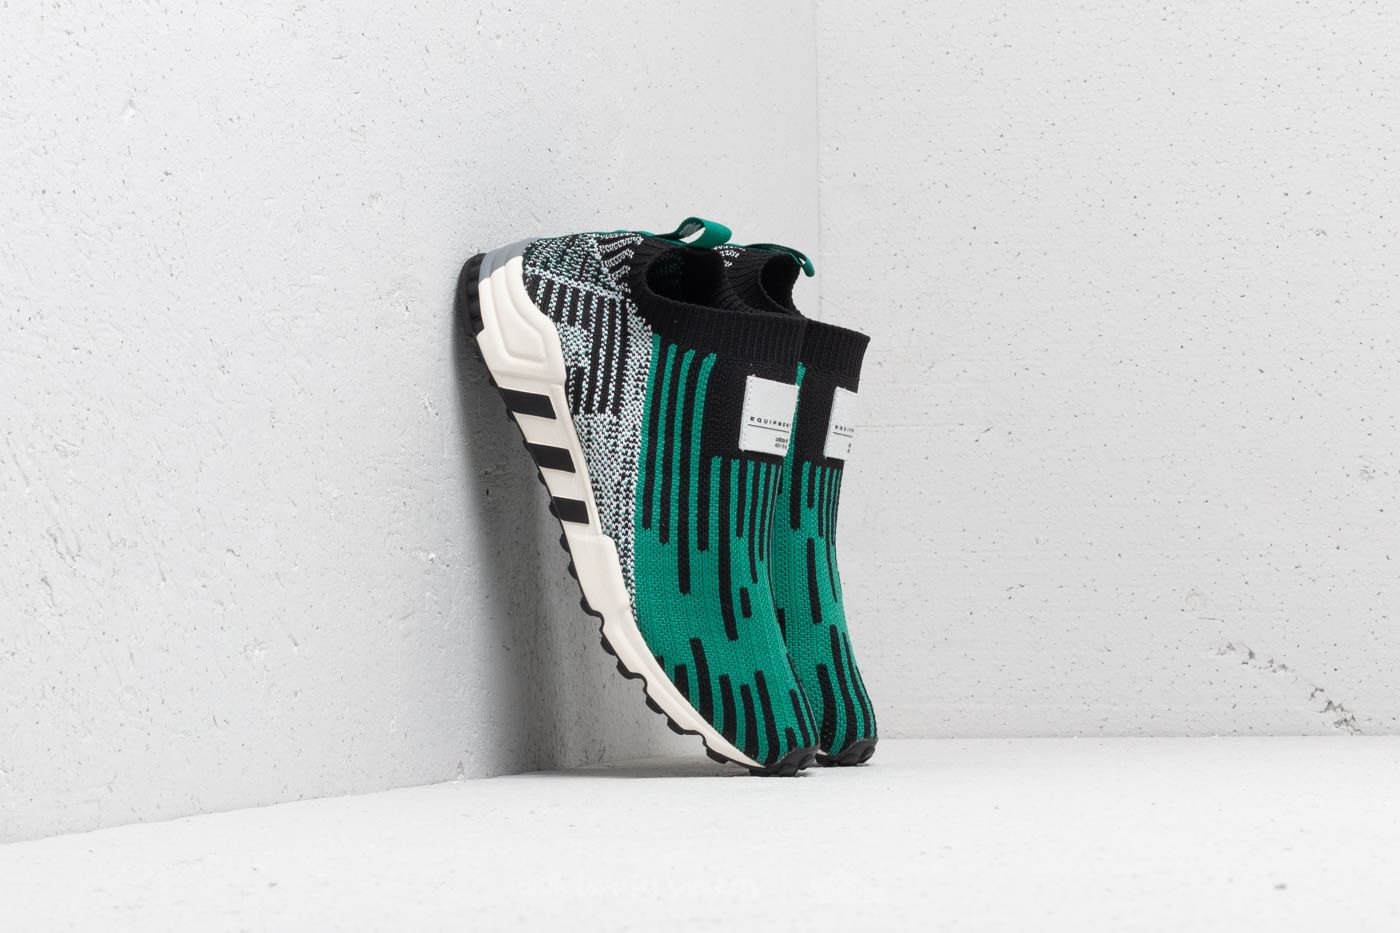 4bad37987b90 adidas EQT Support SK Primeknit Core Black  Sub Green  Ftw White at a great